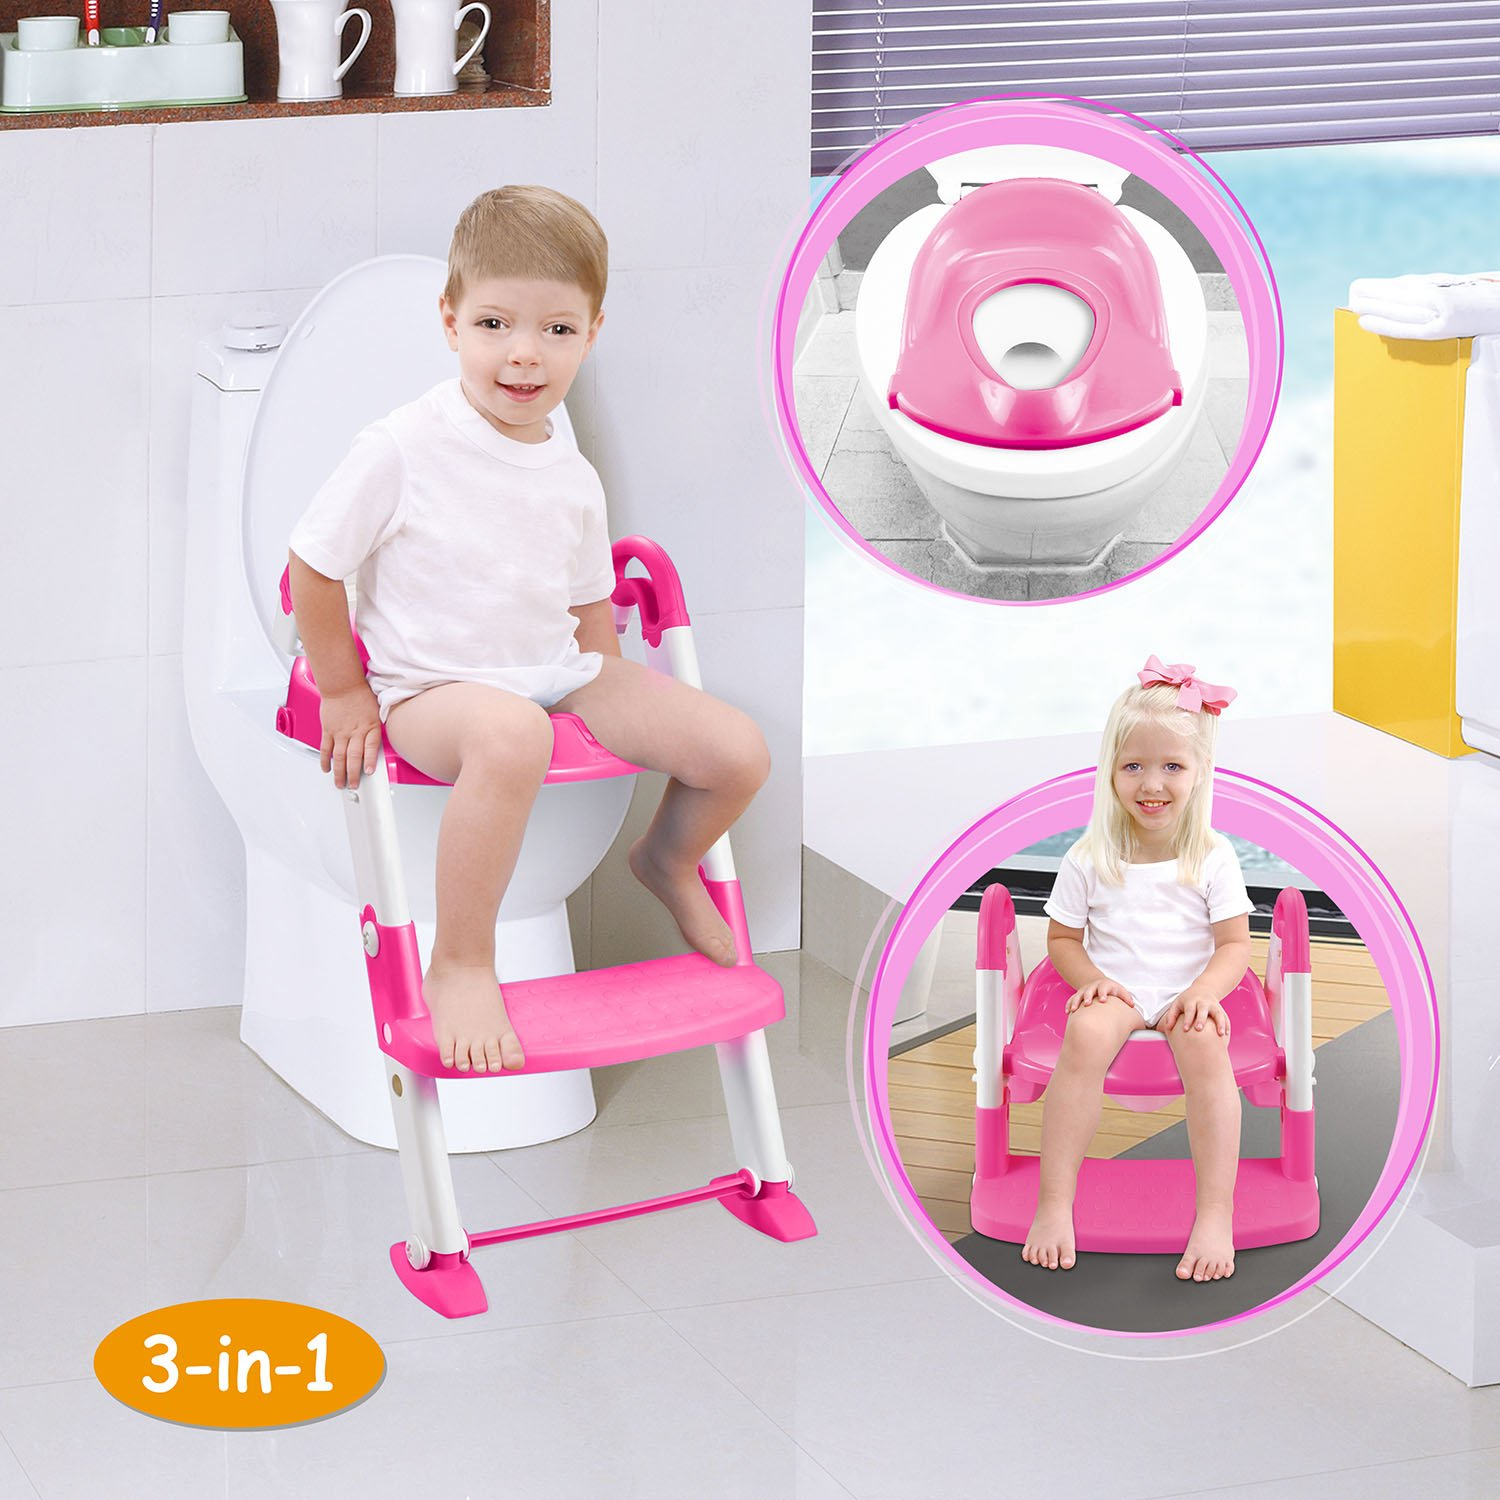 GPCT [Portable] 3-in-1 Kids Toddlers Potty Training Seat W/Step Stool. Sturdy, Comfortable, Safe, Built in Non-Slip Steps W/Anti-Slip Pads. Excellent Potty Seat Step Trainer- Boys/Girls/Baby- Pink